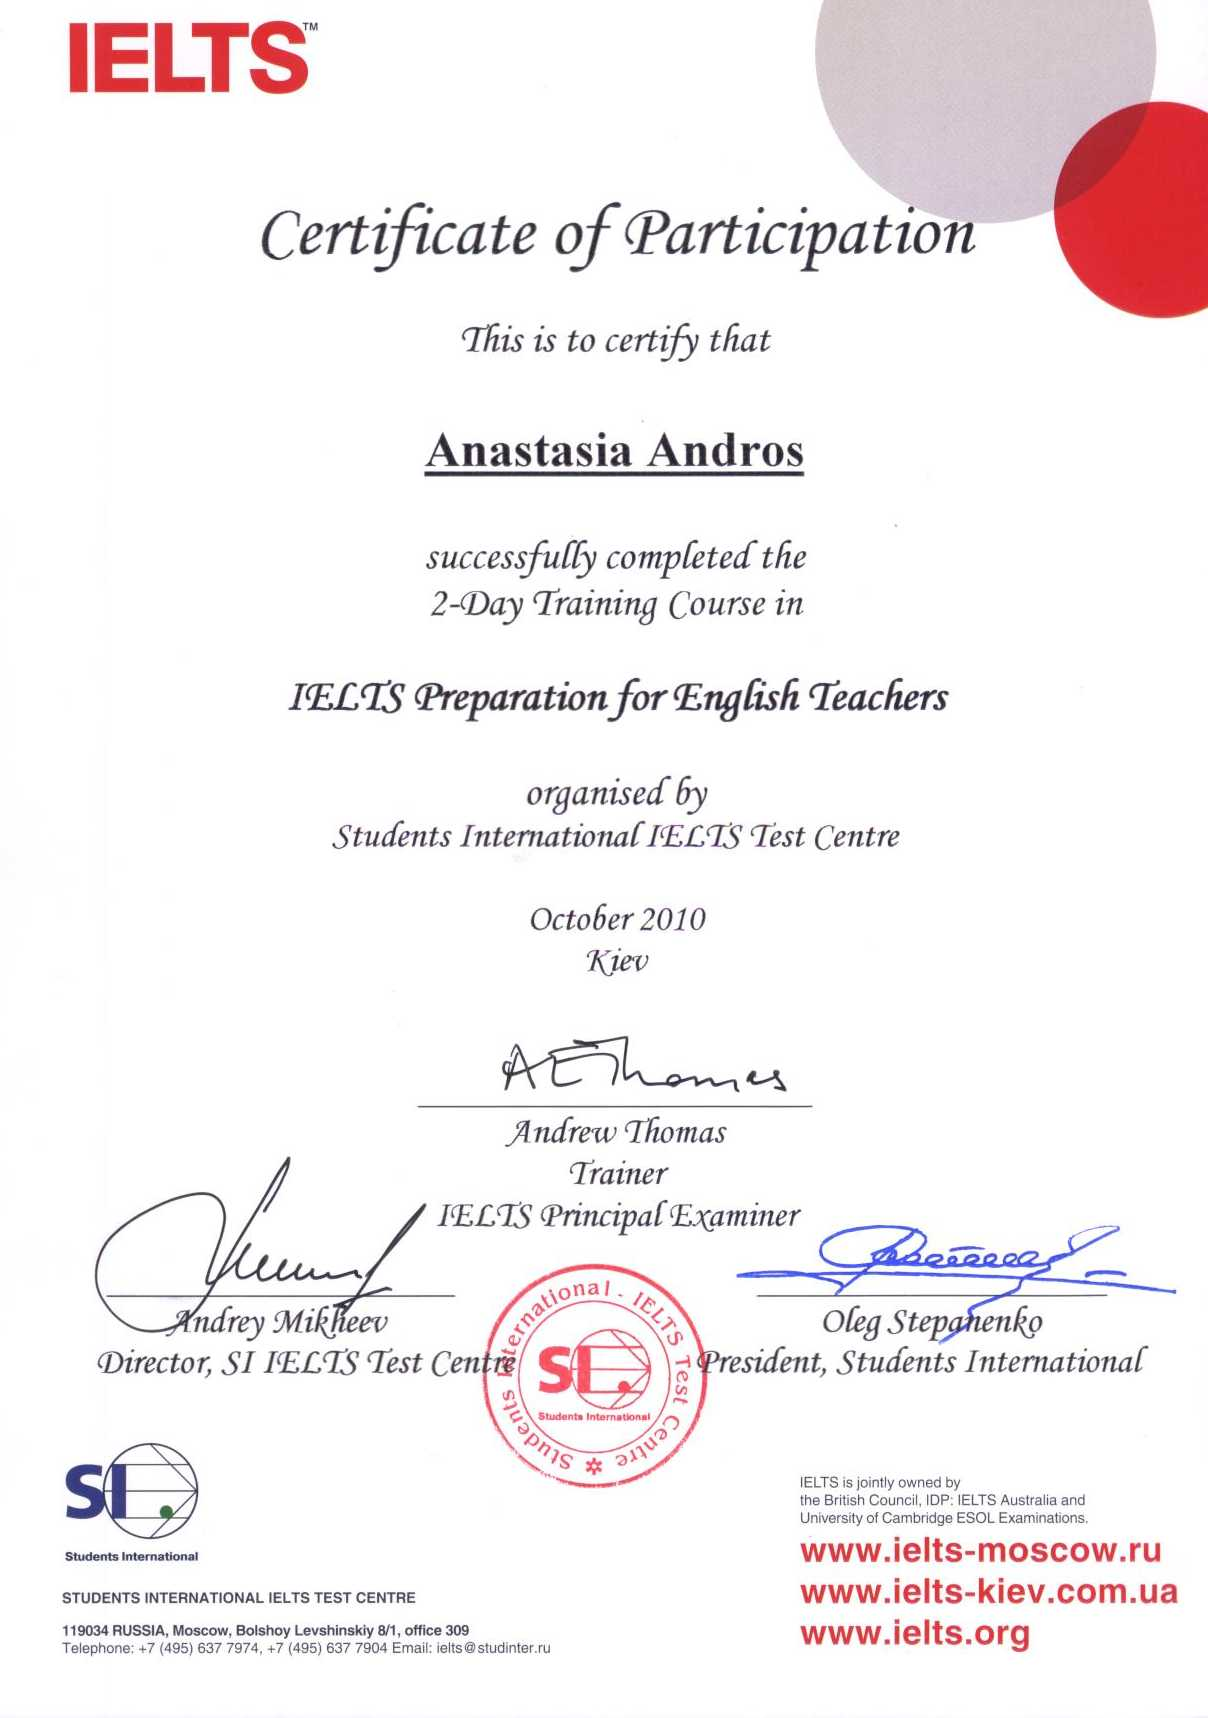 Certificate of Participation, A Course in IELTS Preparation for English Teachers, Anastasia Andros